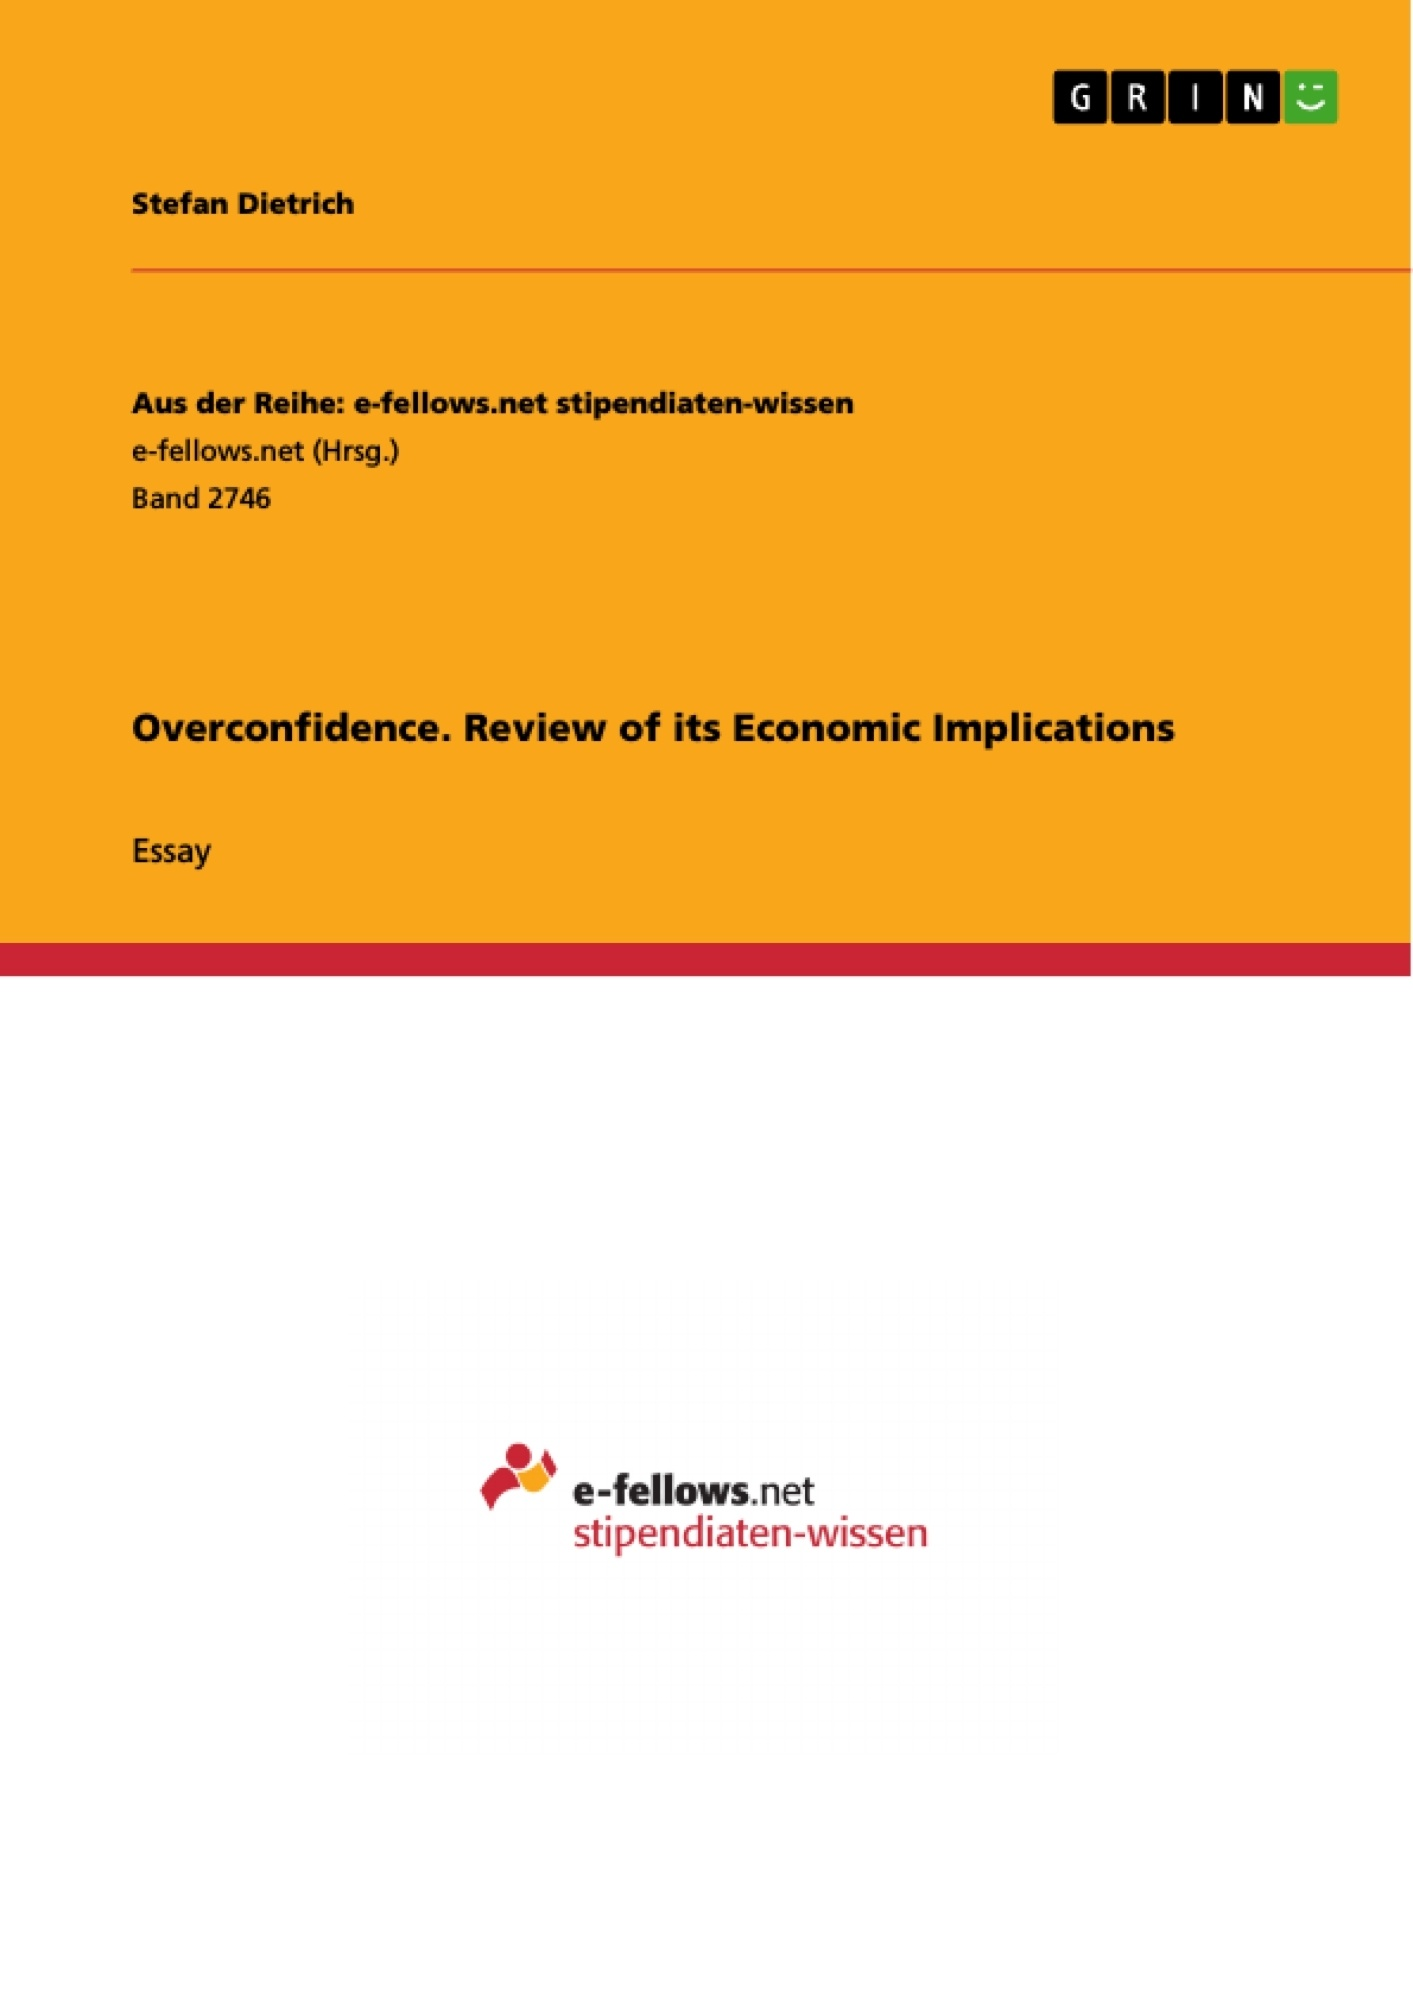 Title: Overconfidence. Review of its Economic Implications